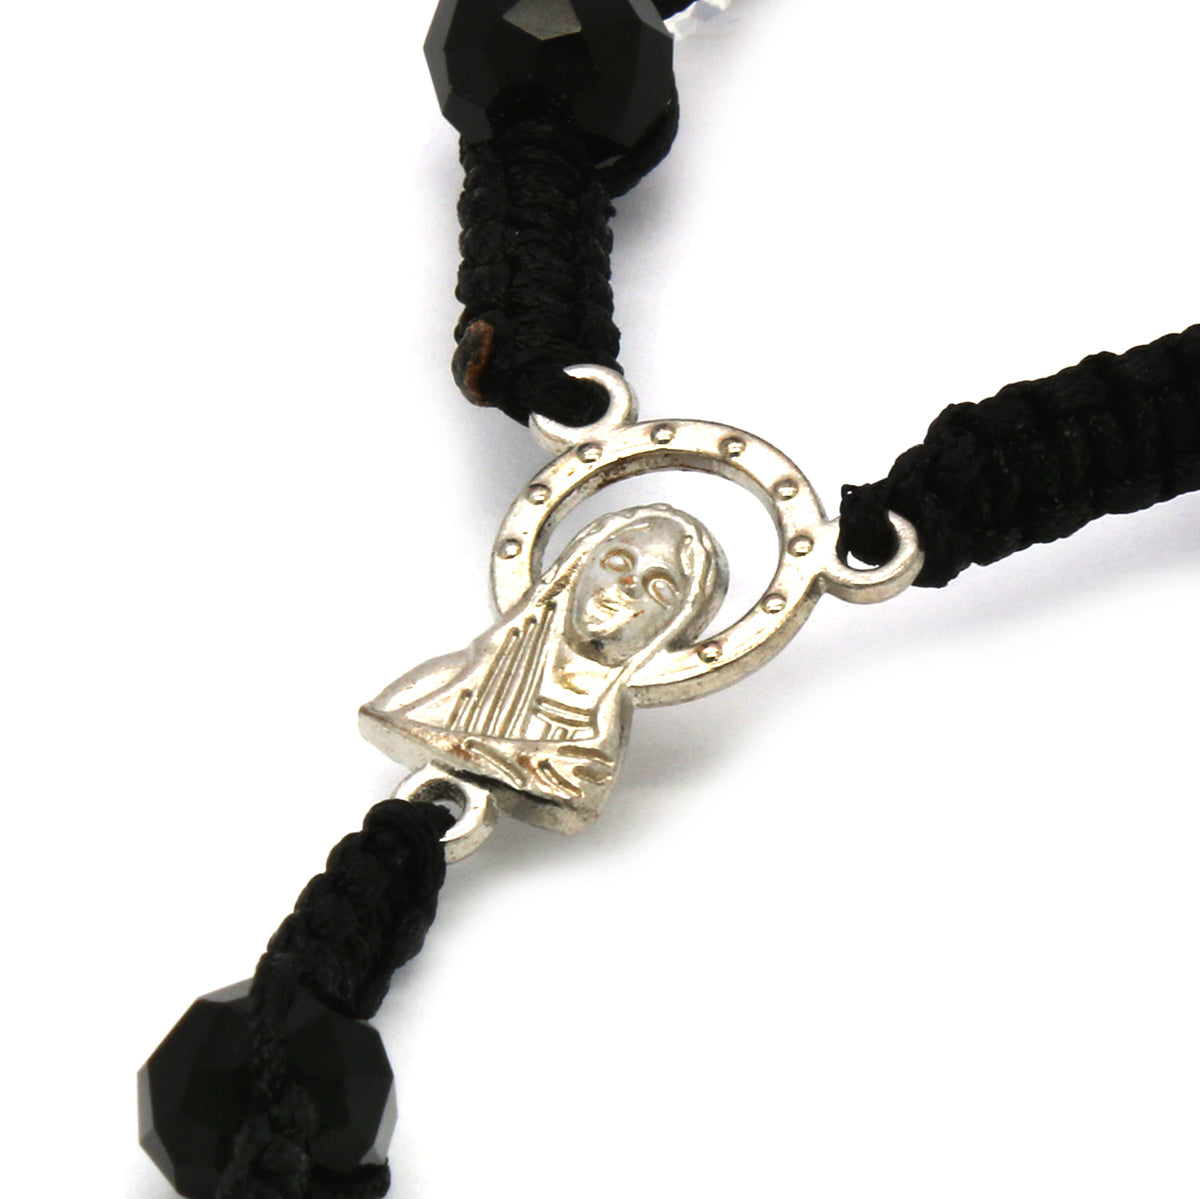 8MM Black/Clear Crystal Fabric Rosary With Cross Pendant